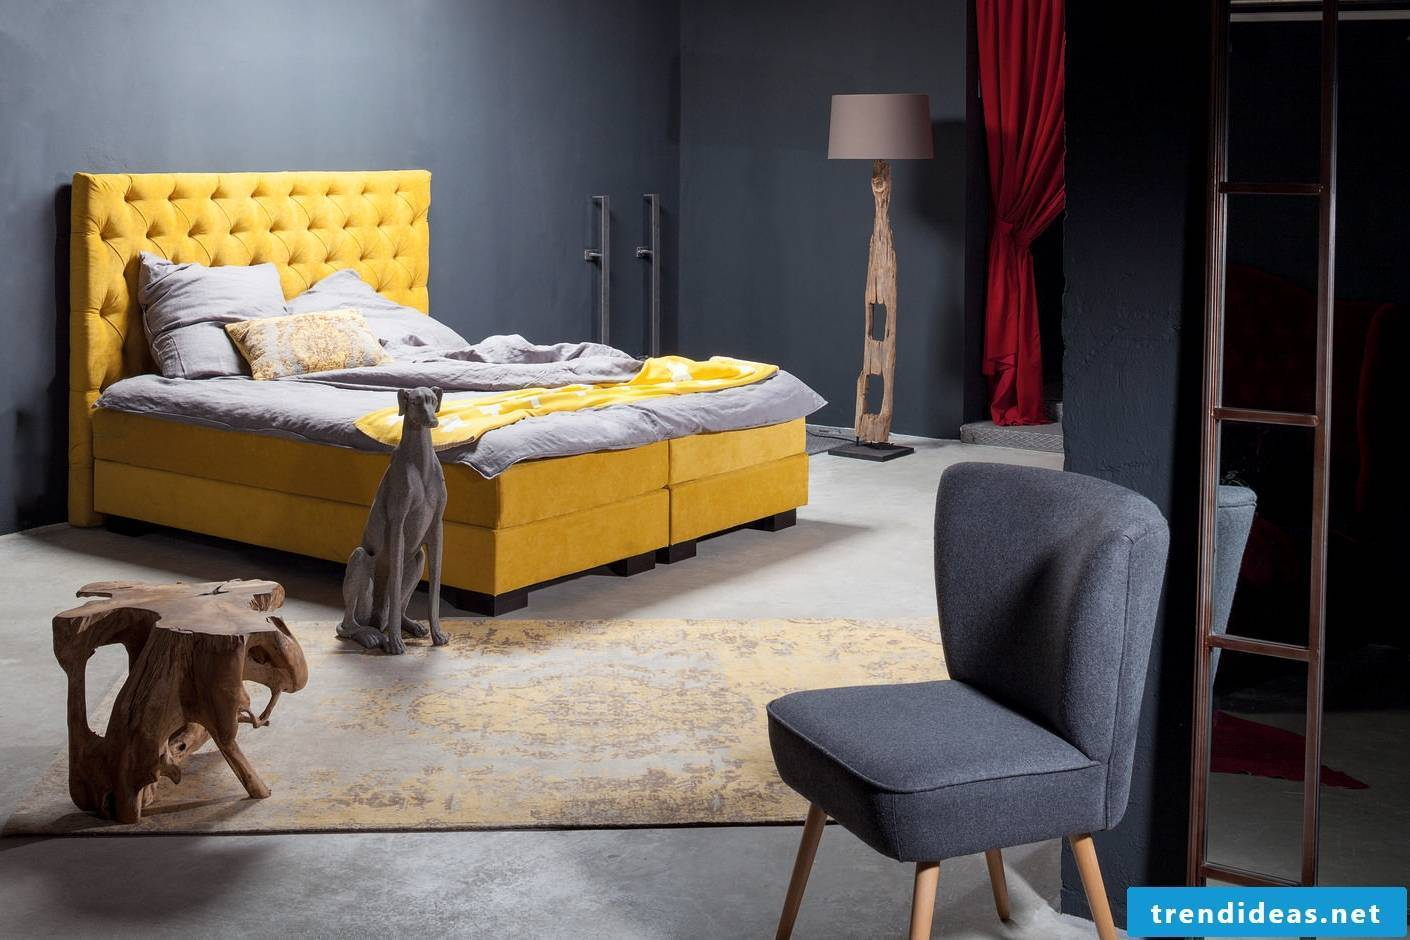 Boxspring luxury for connoisseurs